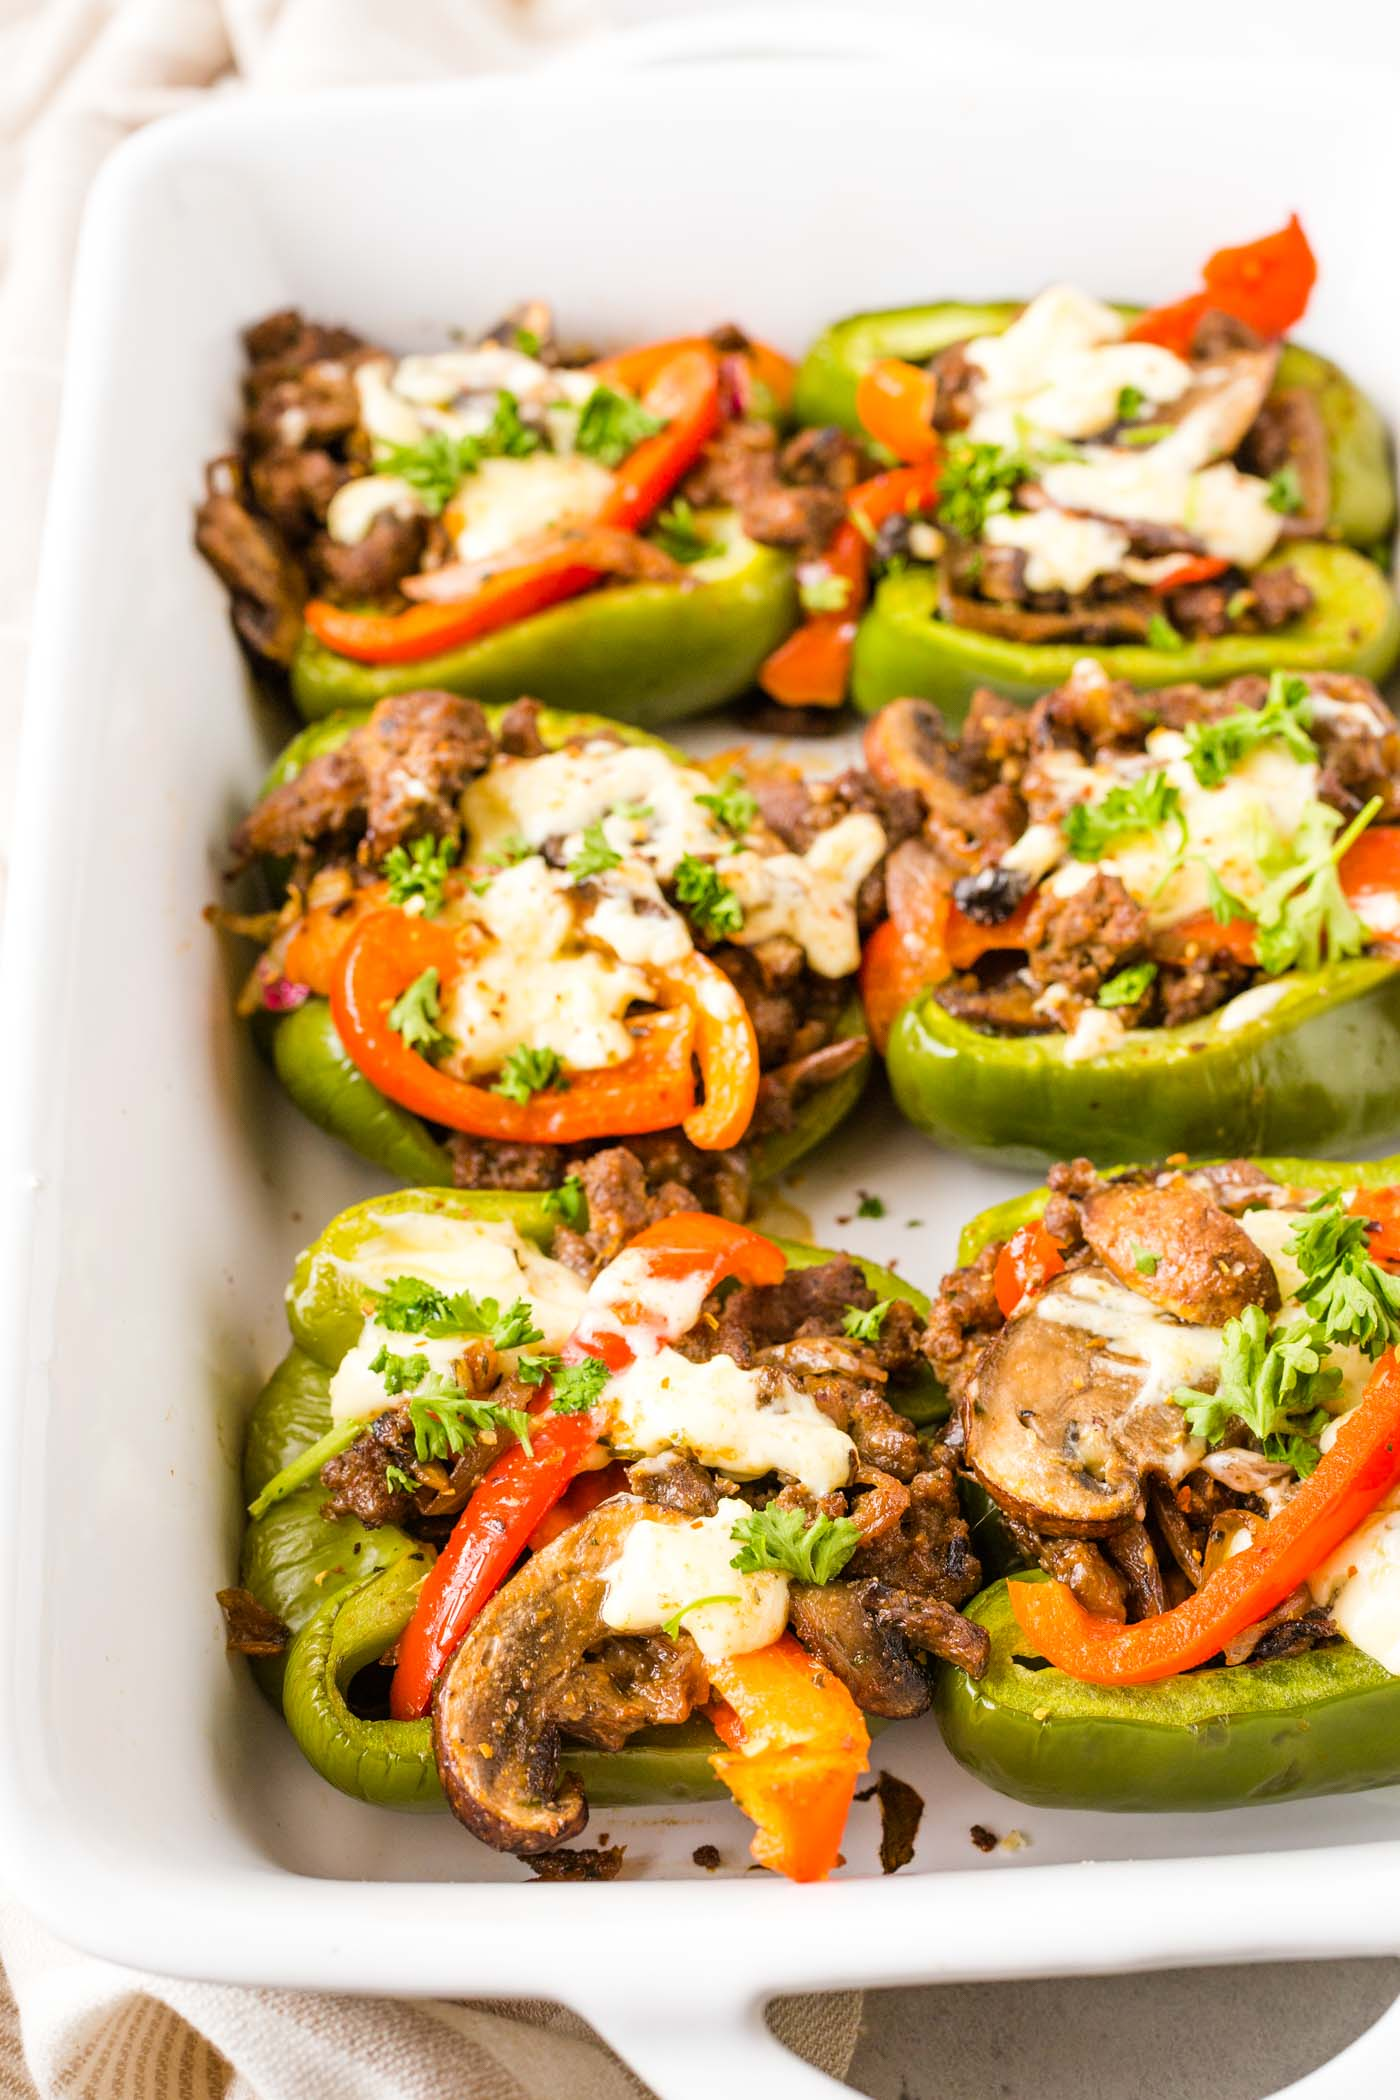 Baked green peppers with ground beef, mushrooms, onions and mayonnaise in white casserole dish